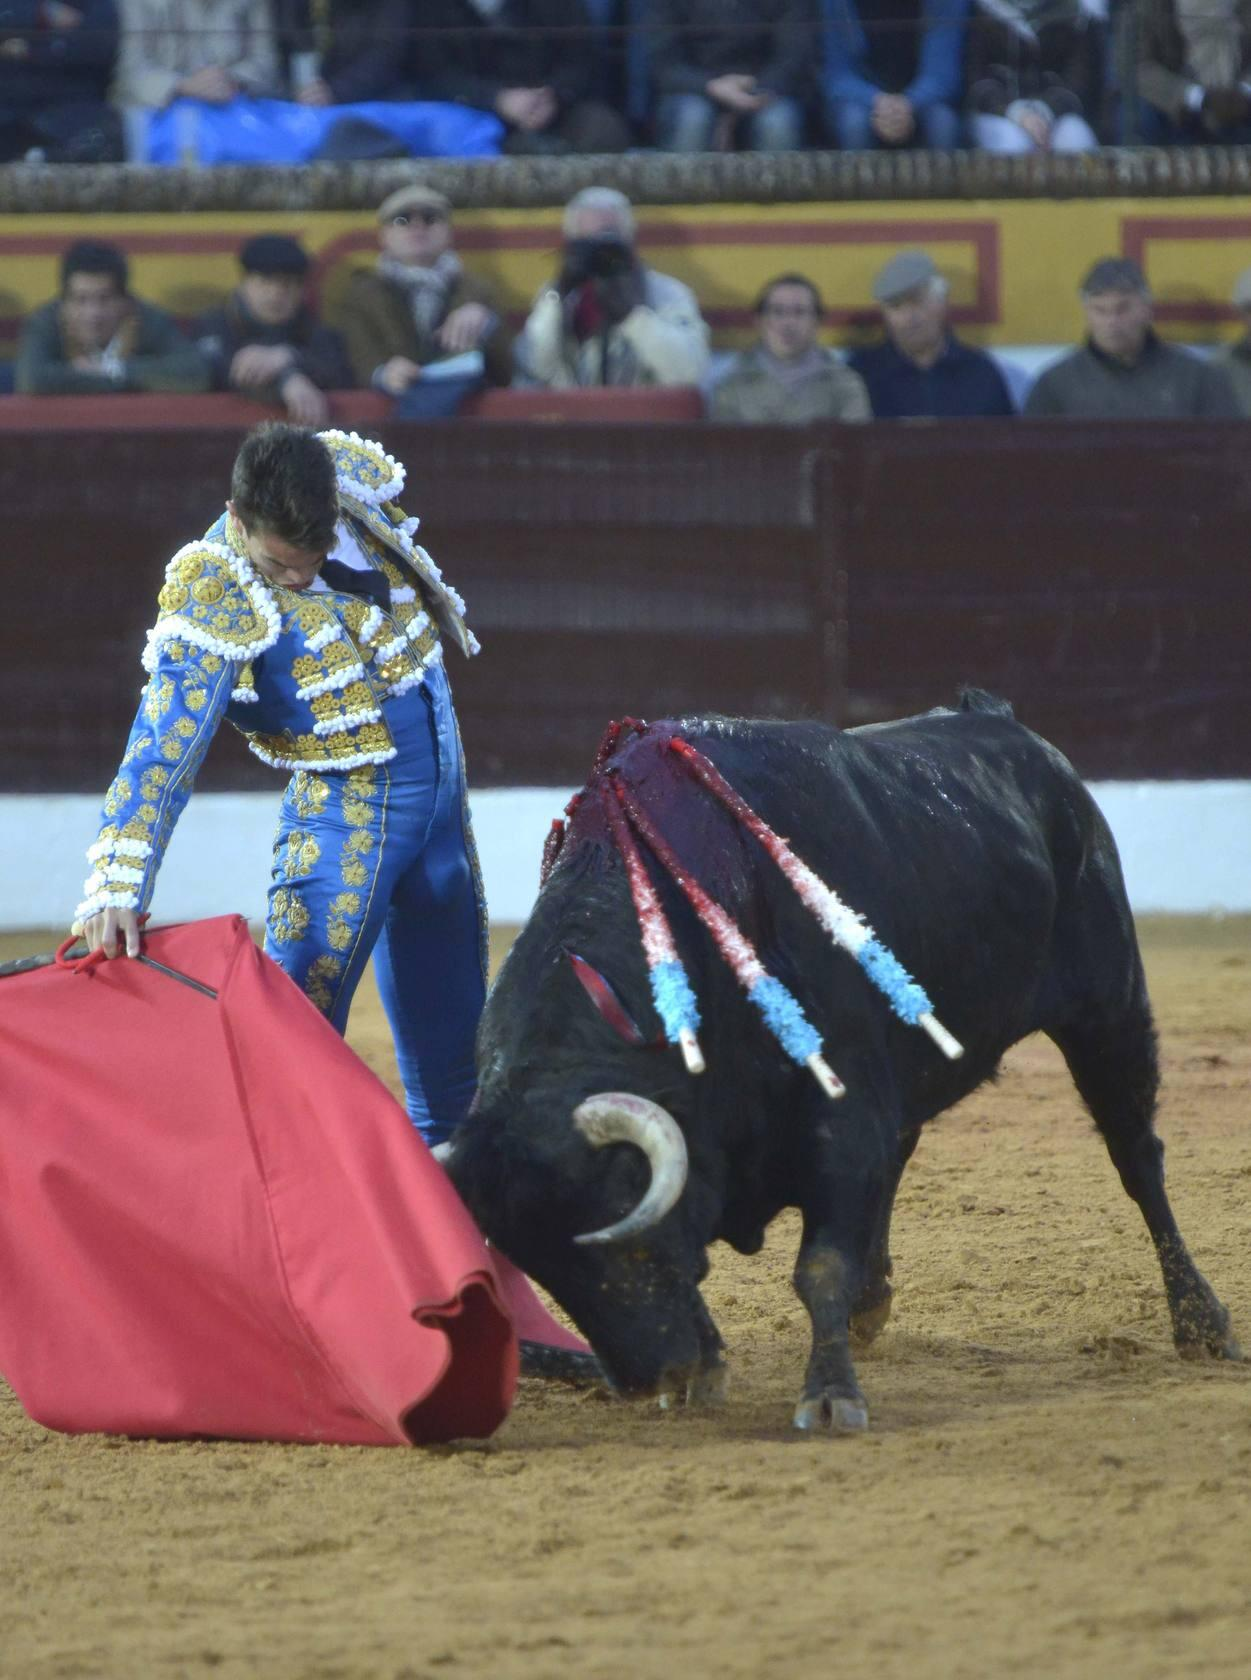 TOROS OLIVENZA | La corrida del domingo, en im&aacute;genes